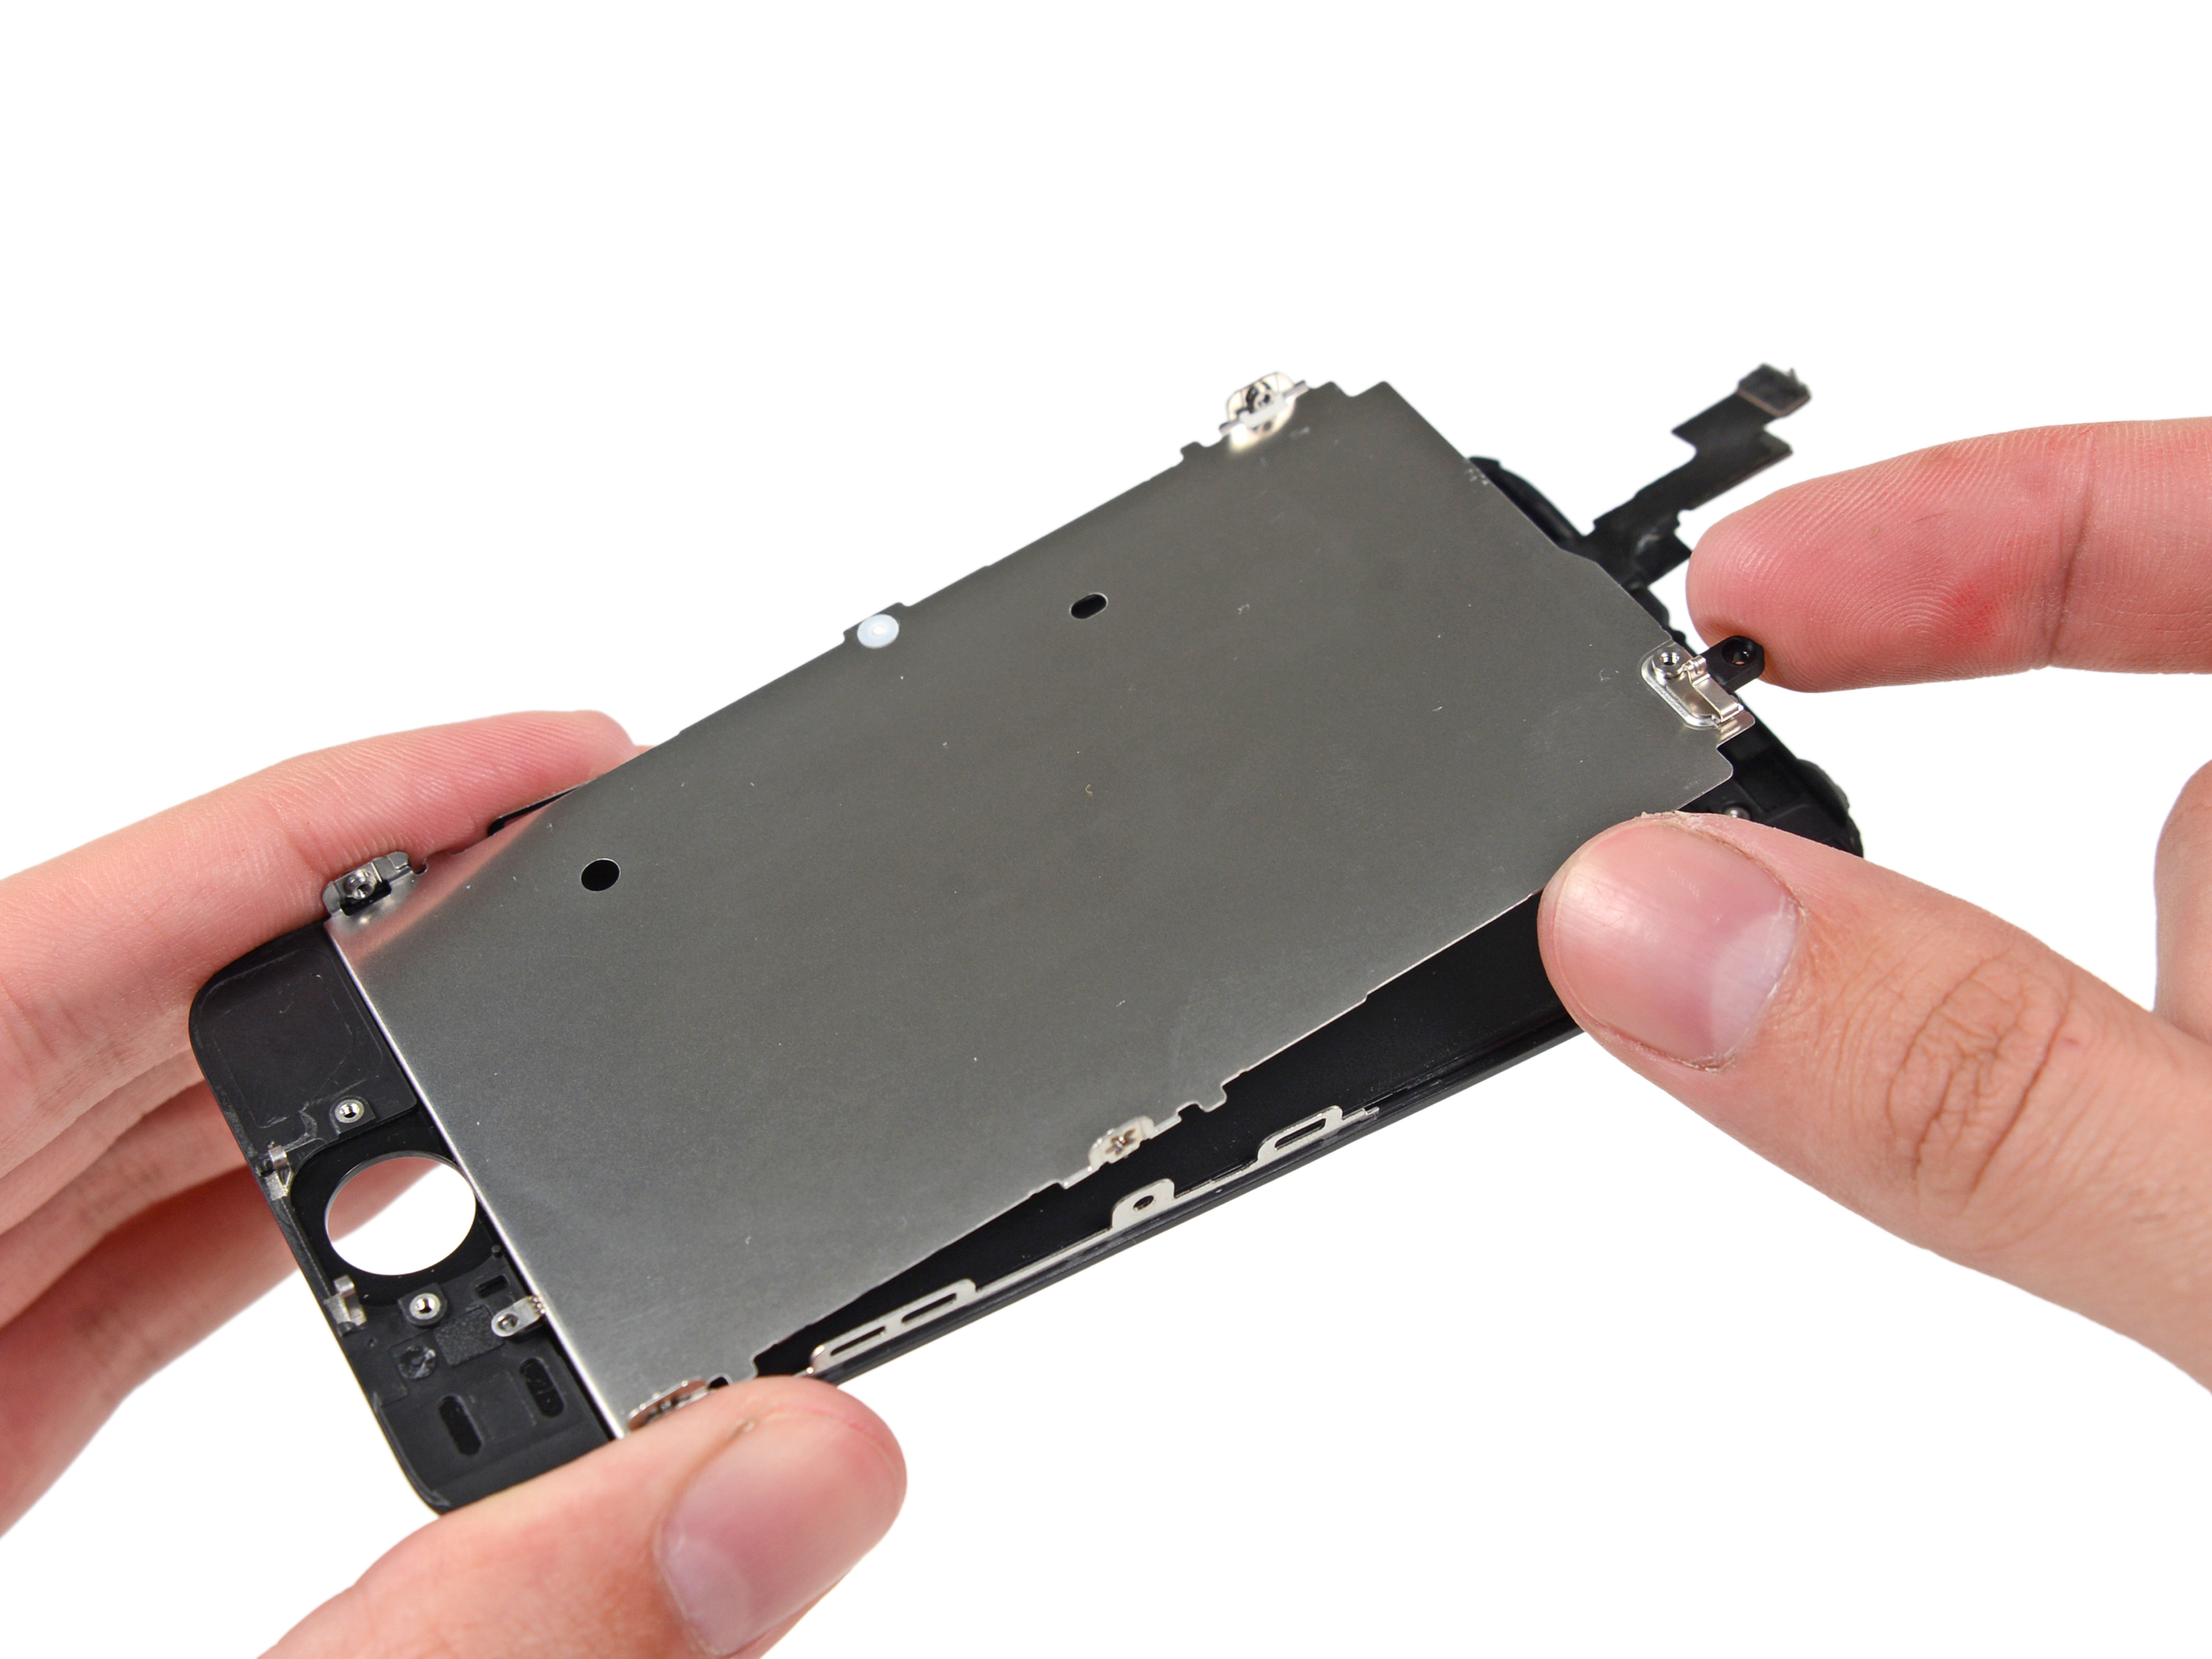 Iphone 5s Front Panel Replacement Ifixit Repair Guide Power Connectors Of The Connector For Your Reference